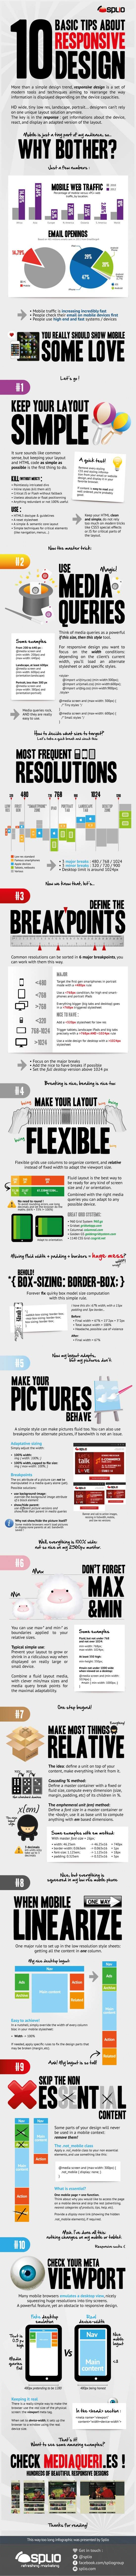 10_basic_tips_about_responsive_designsplioinfographic-550x10437